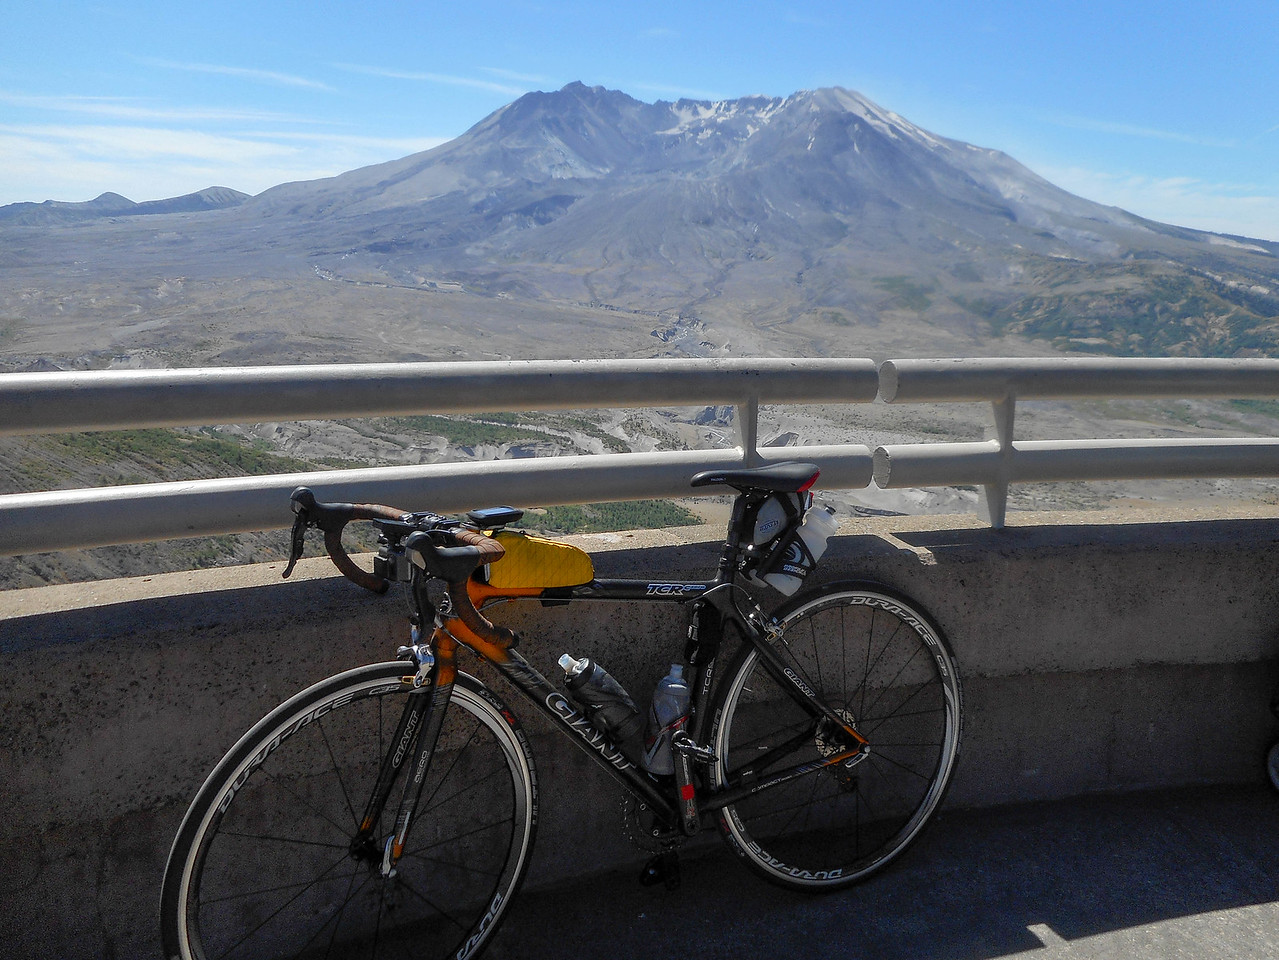 My bike and the crater.